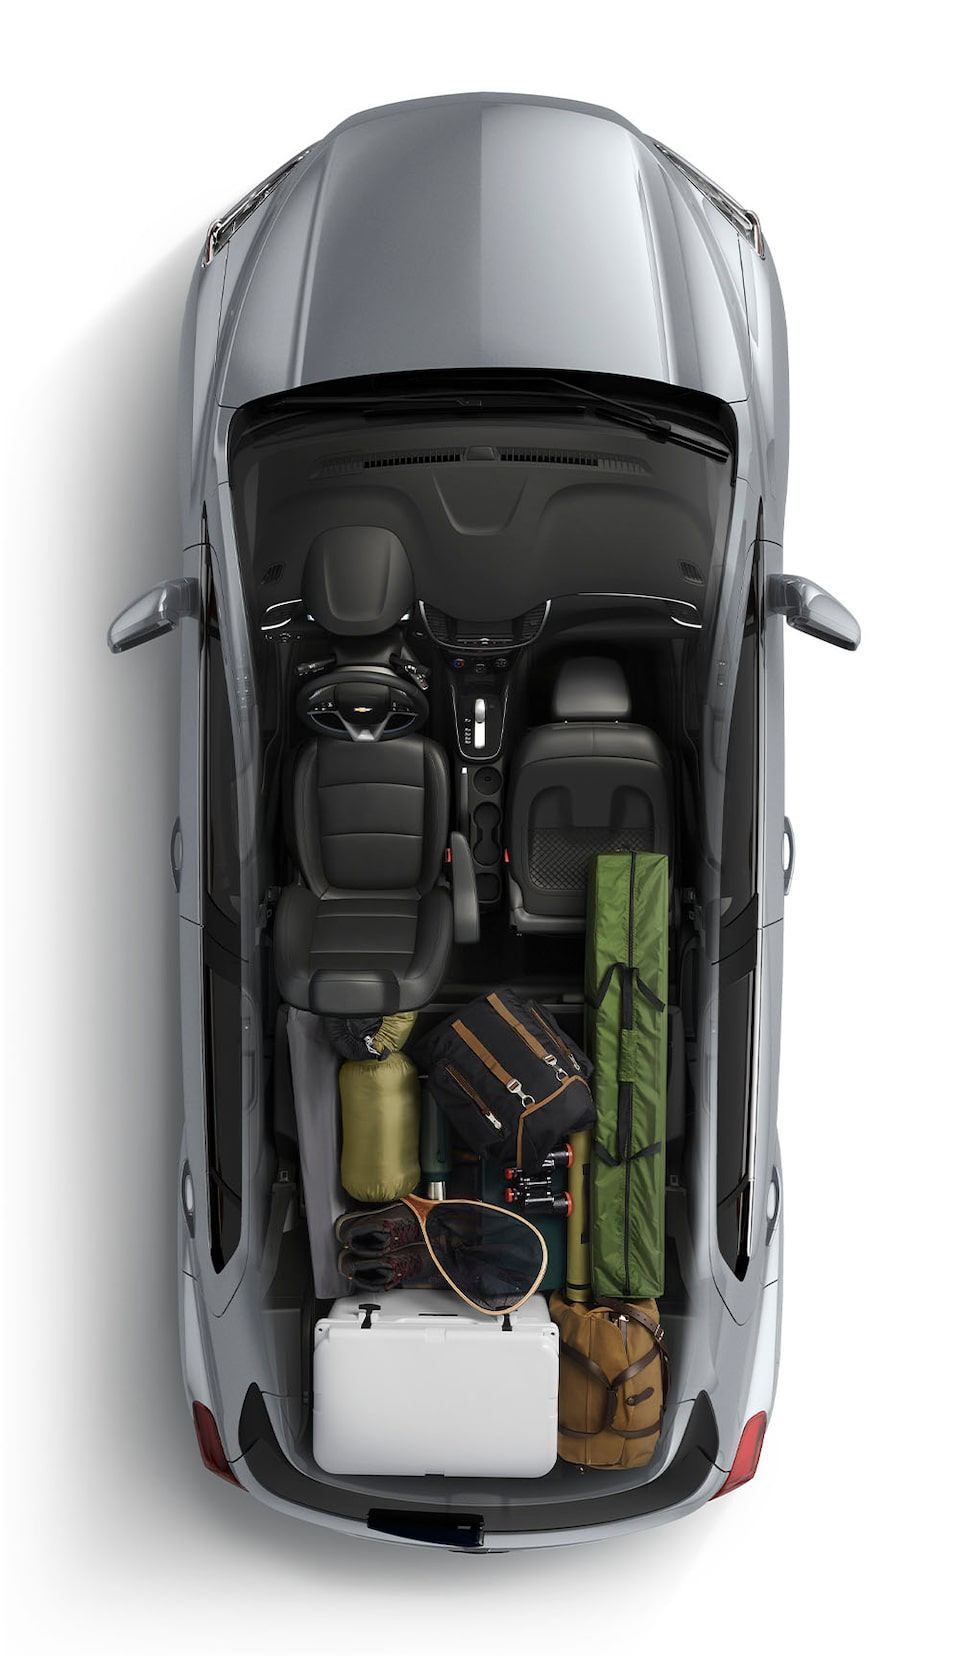 2020 Chevy Trax Cargo Aerial View